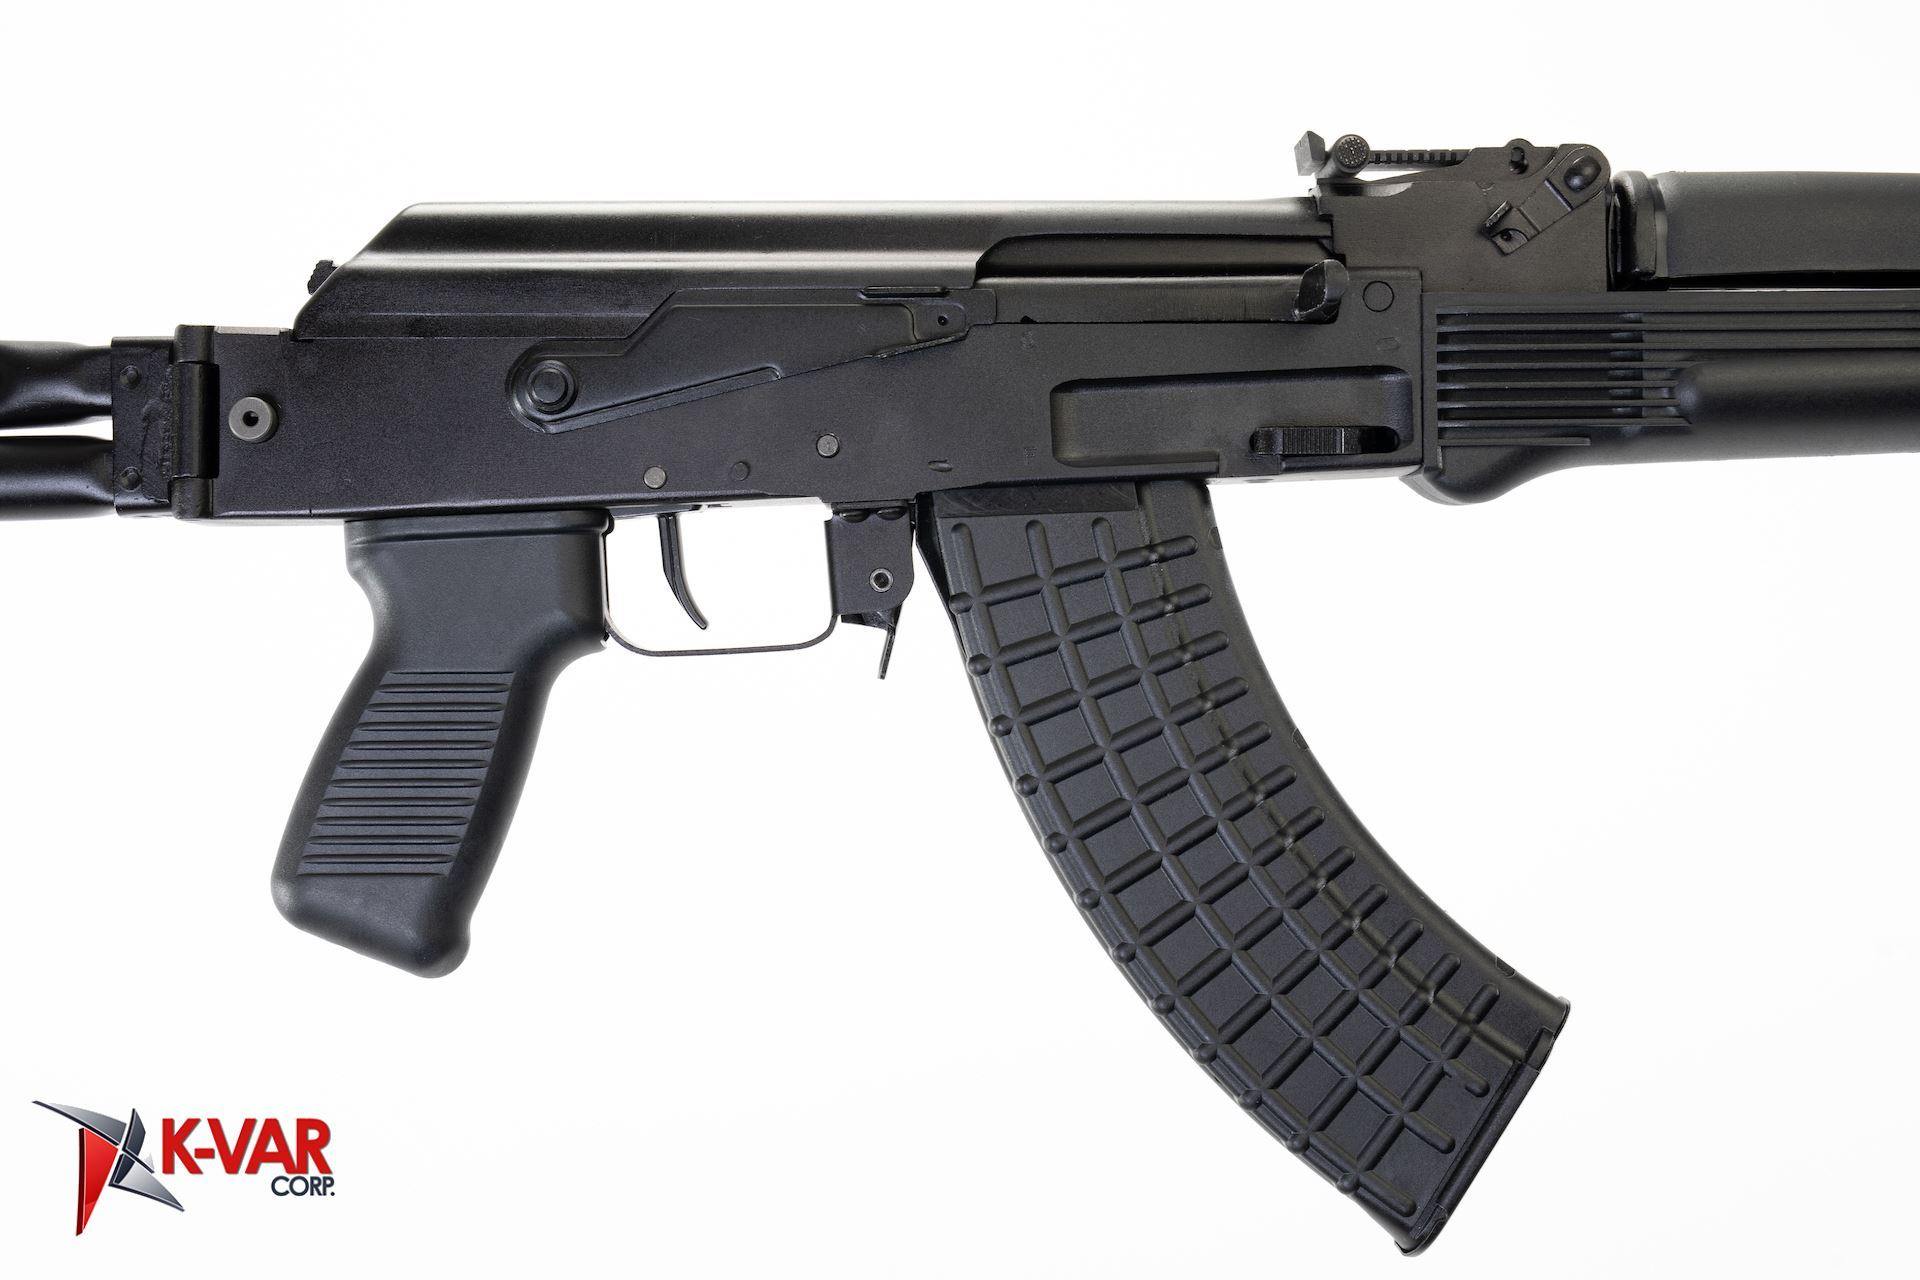 arsenal SAM7SF-84E AK pattern rifle k-var corp ak-47 ak47 7.62x39